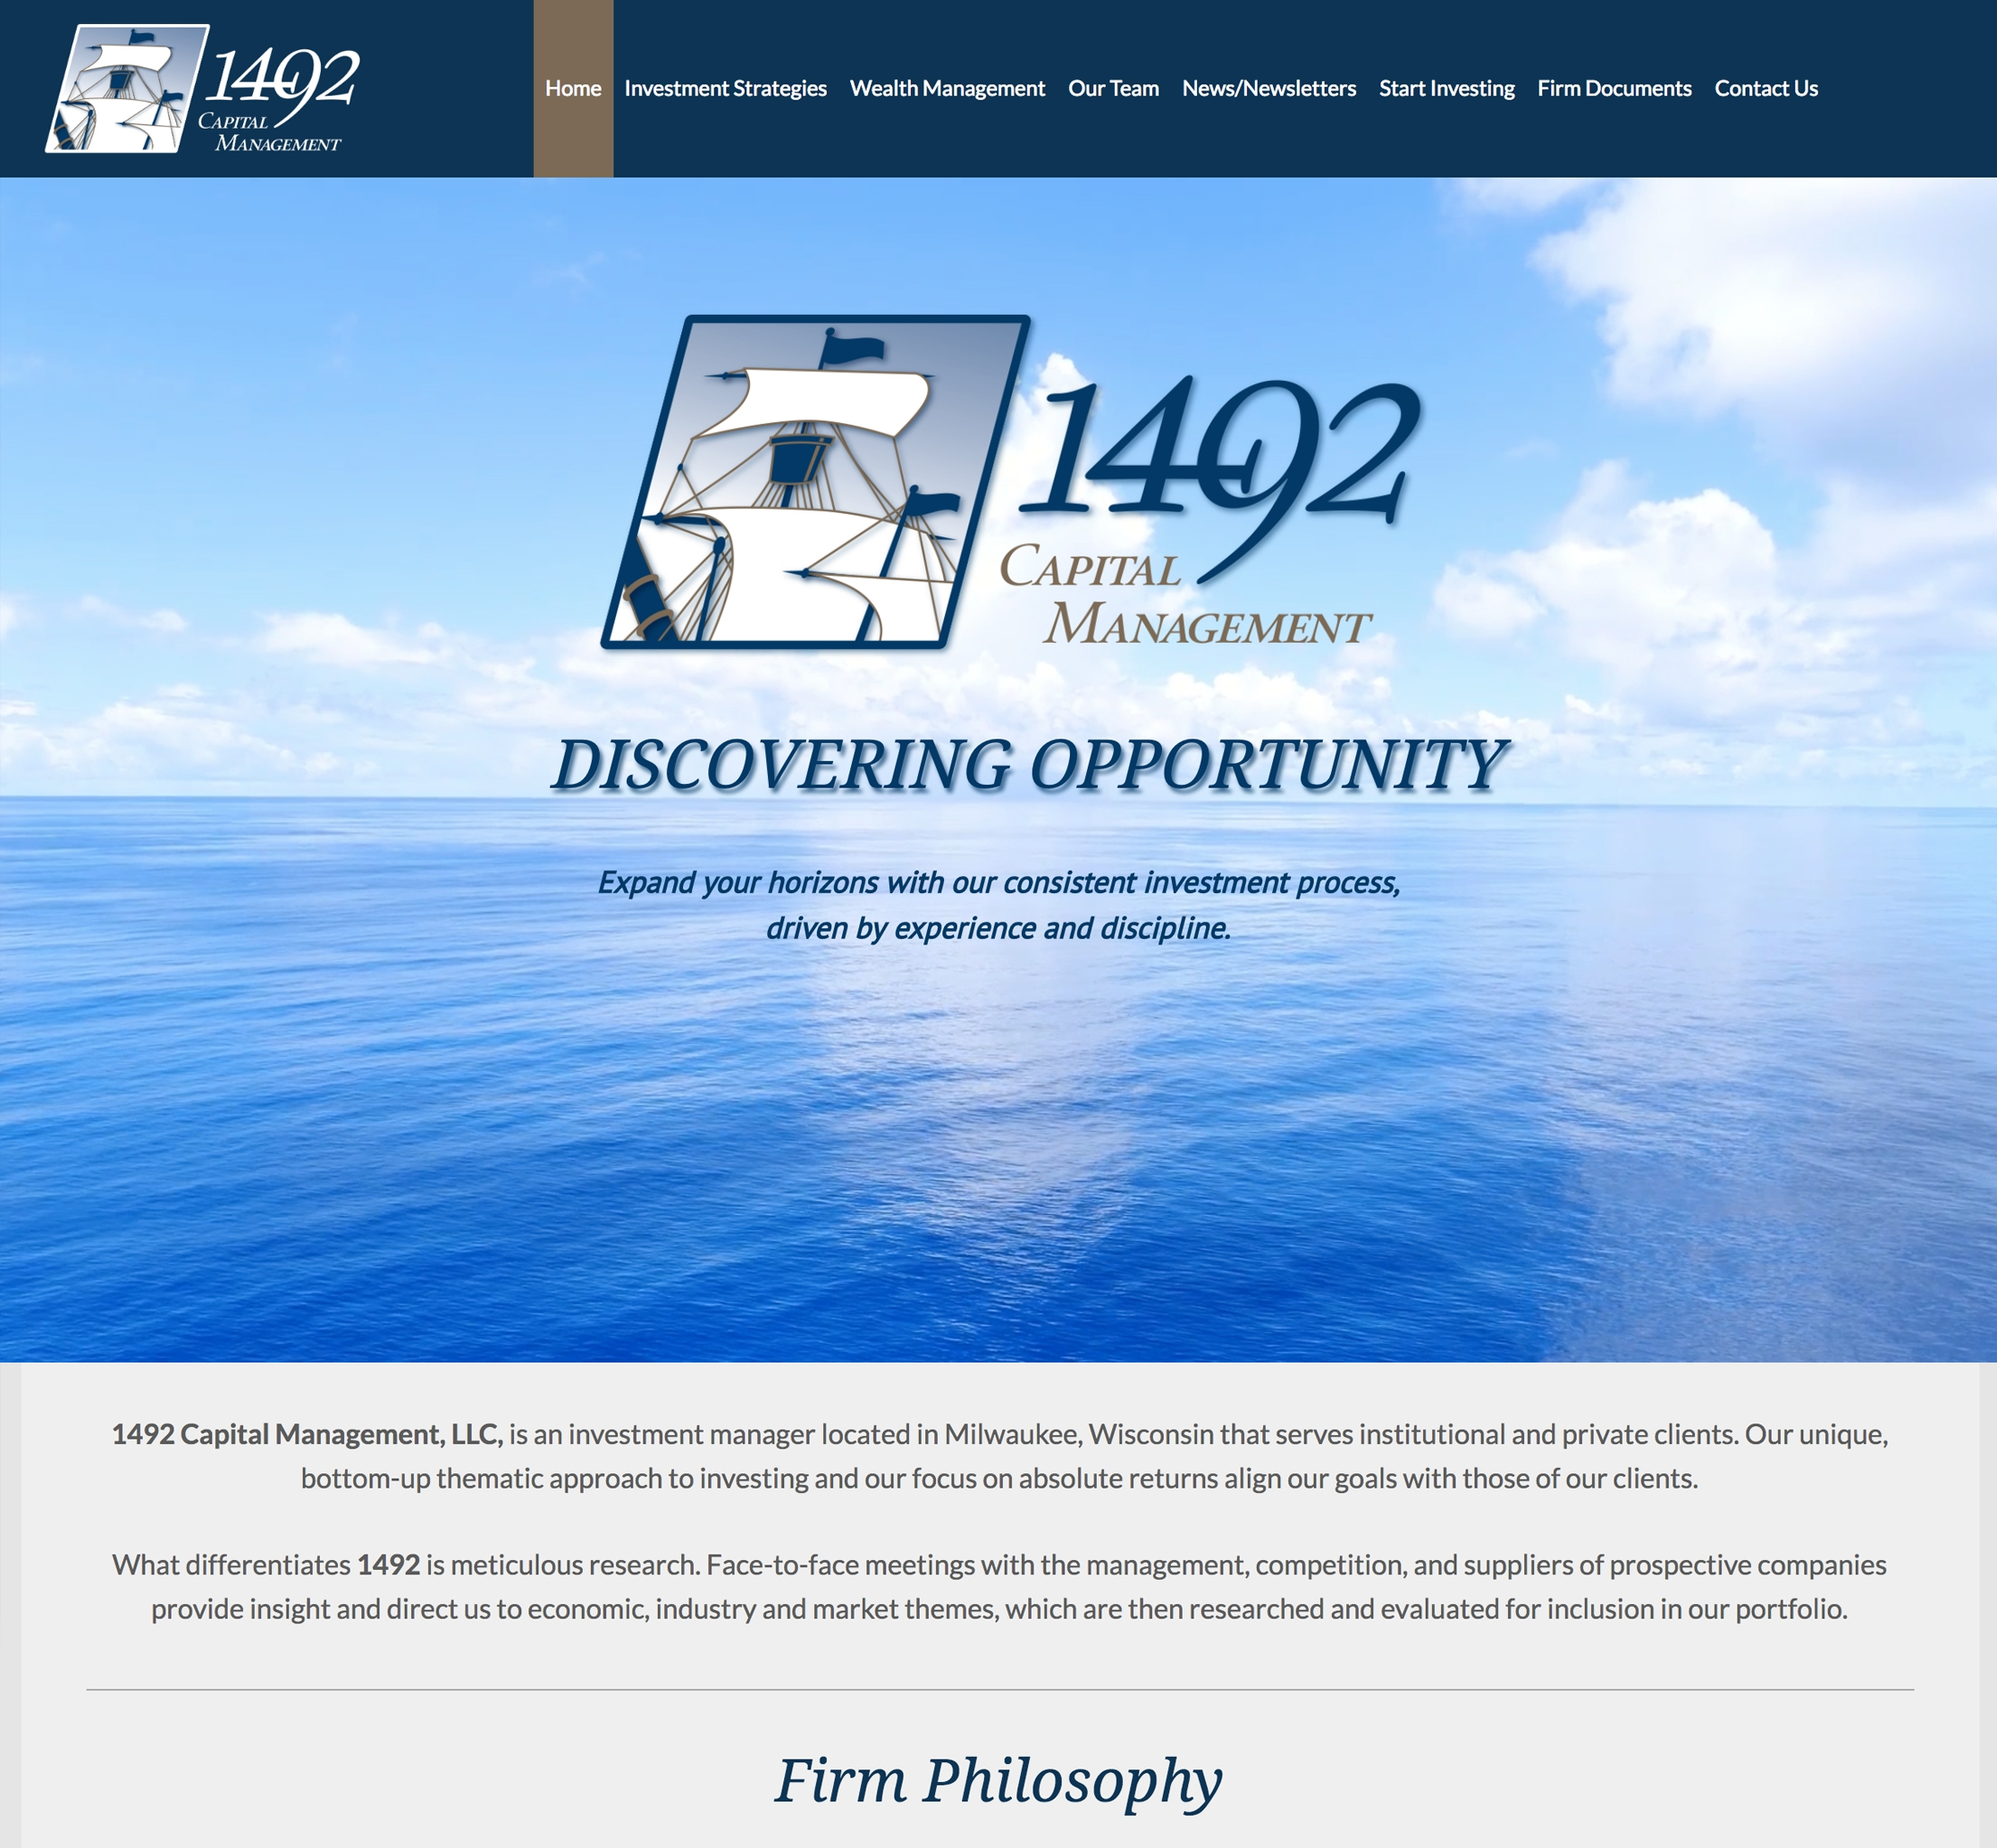 1492 Capital Management